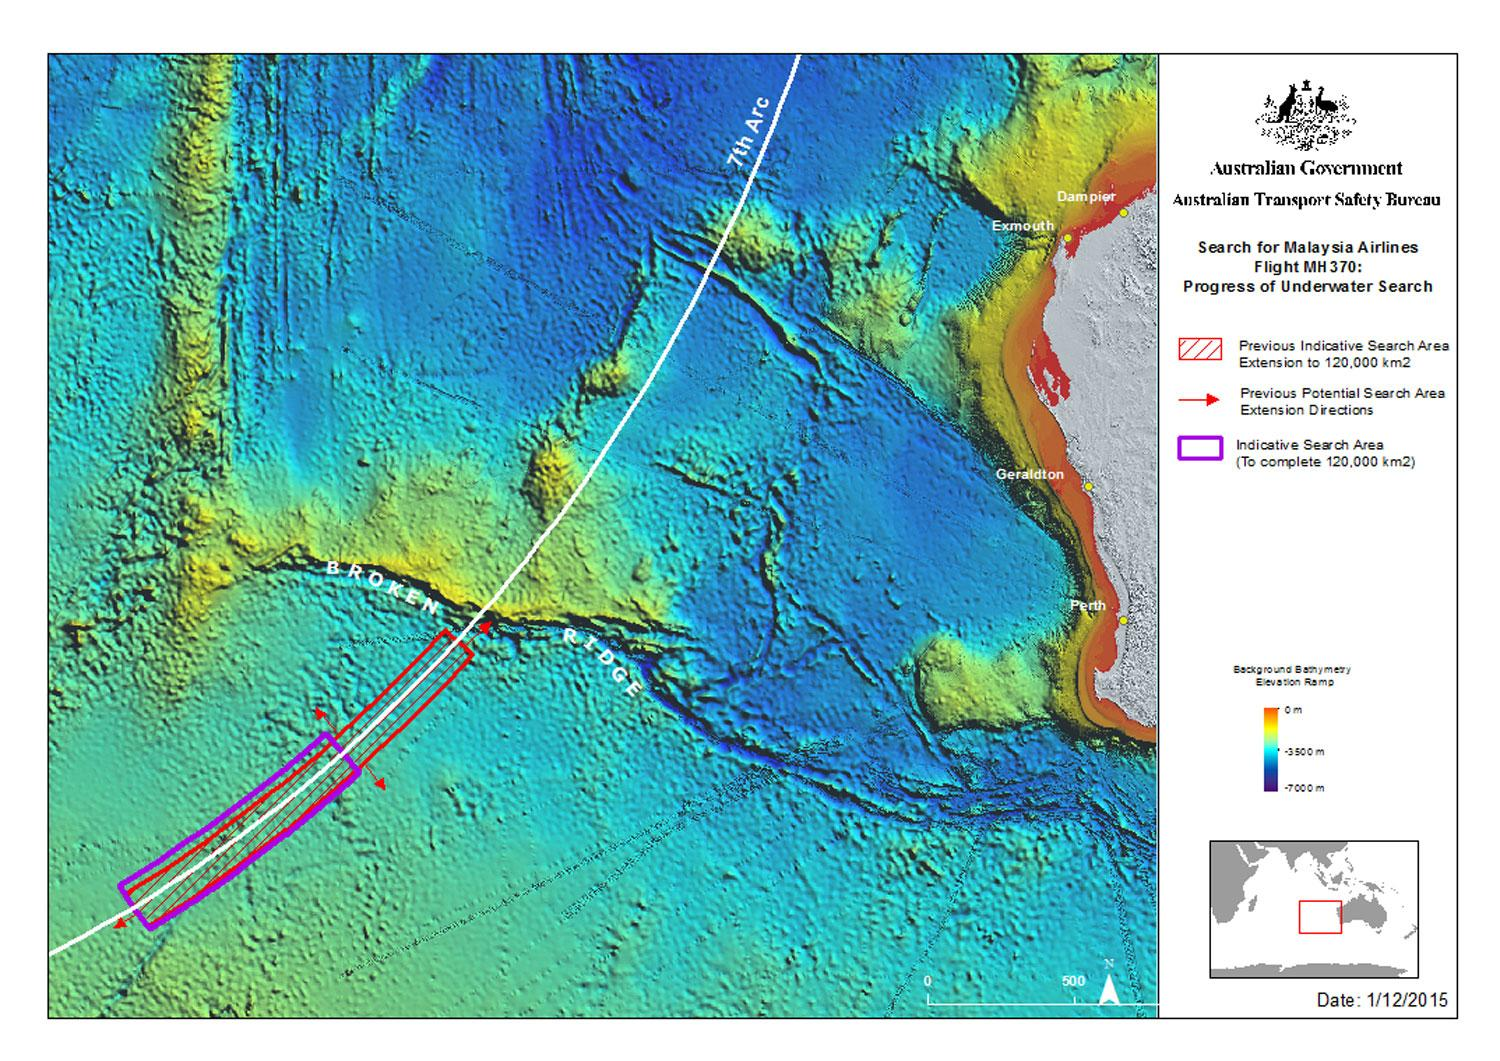 mh370 search zone